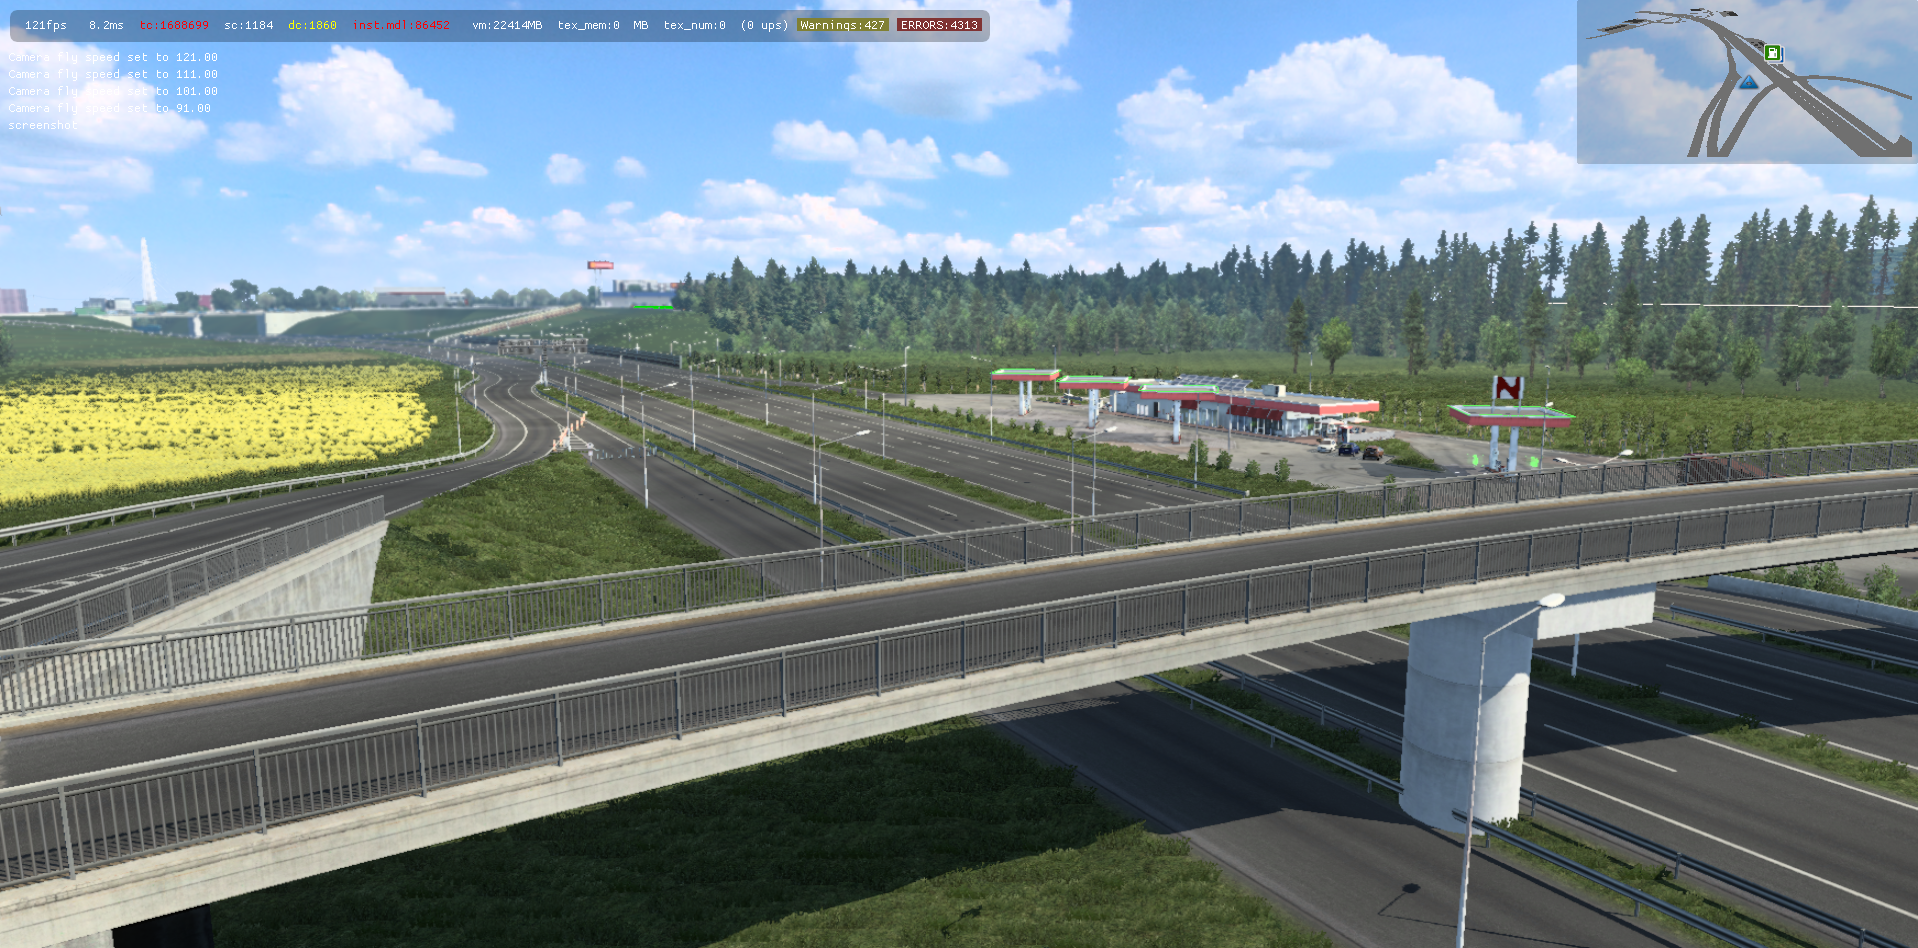 ets2_20210622_193625_00.png